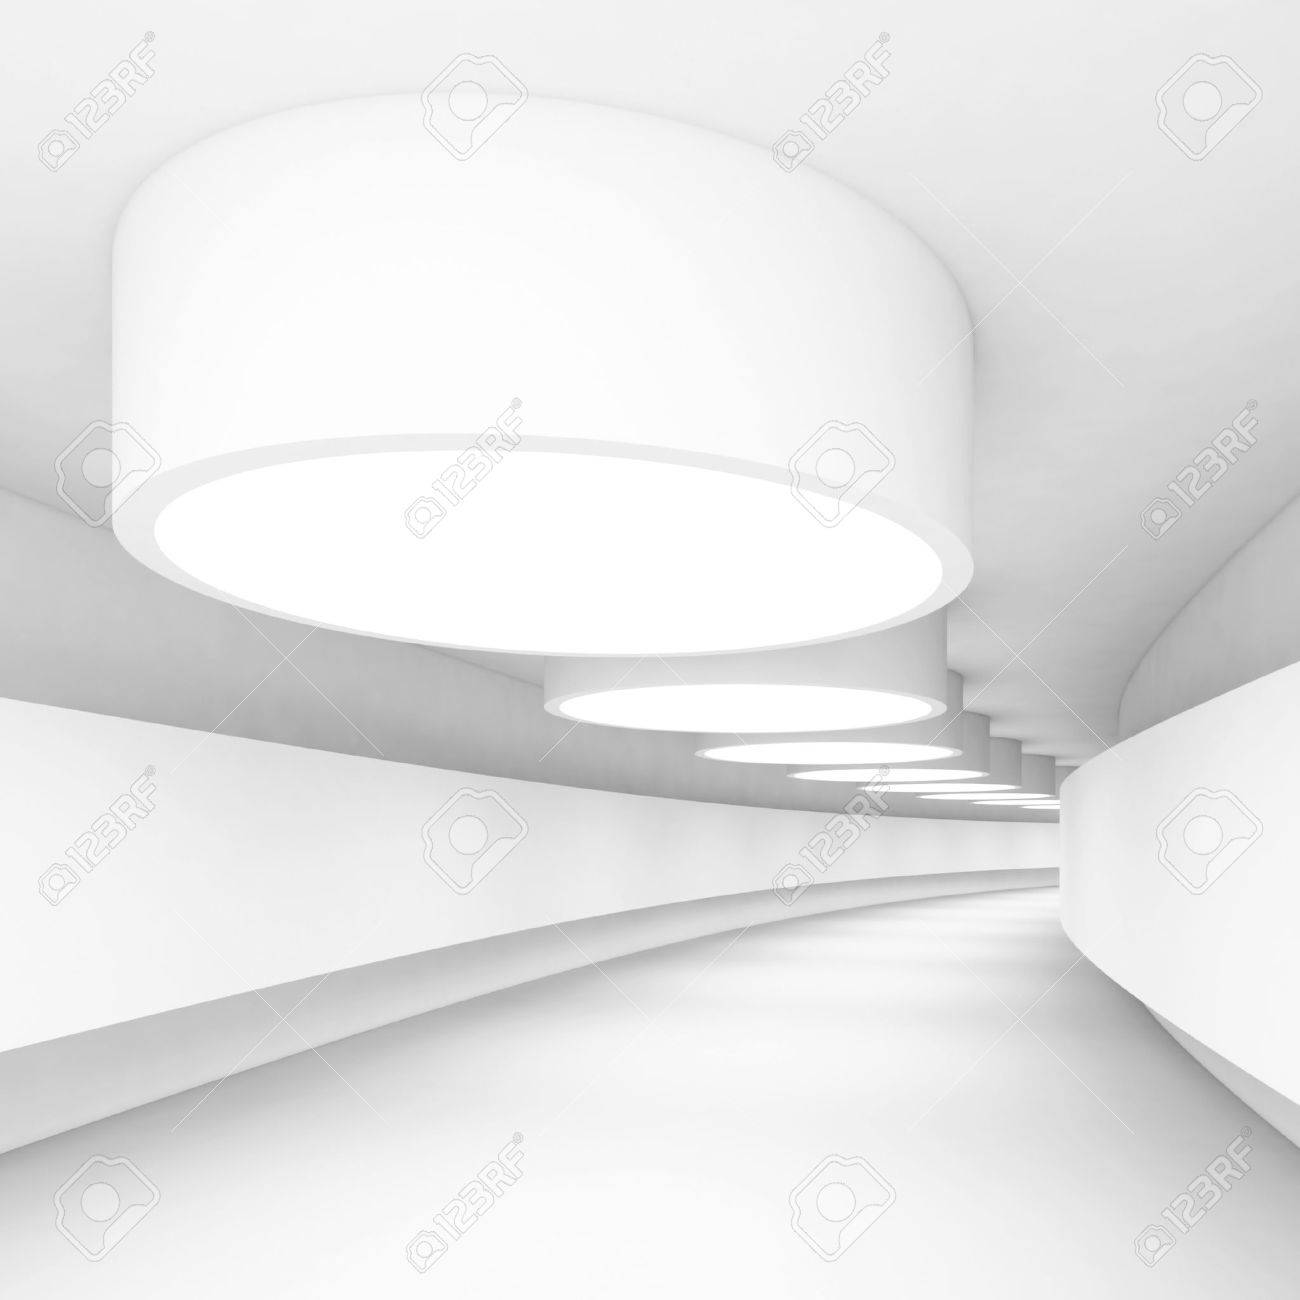 White Abstract Architecture Construction Stock Photo - 10026945